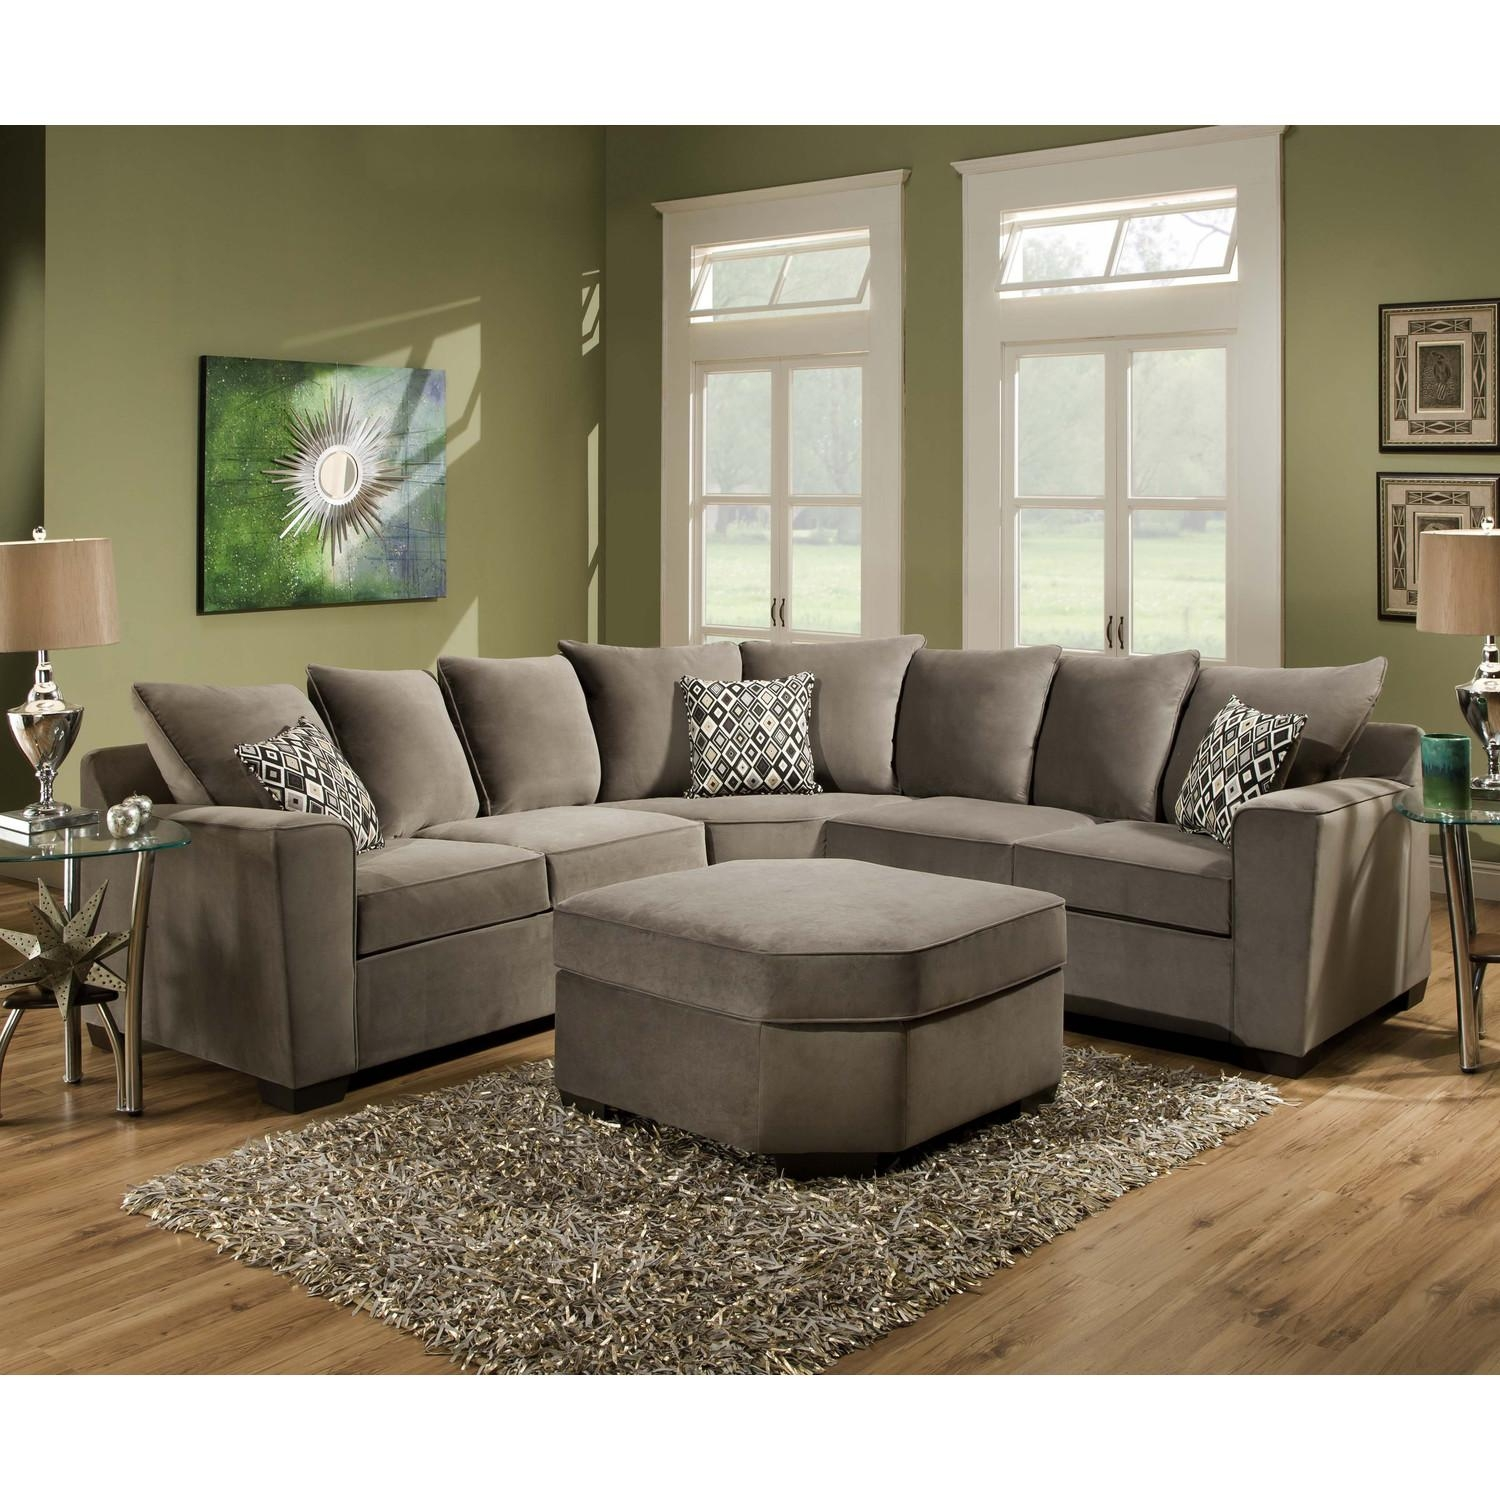 Simmons Sofa Bed | Sofa Gallery | Kengire With Simmons Sofa Beds (Image 12 of 20)